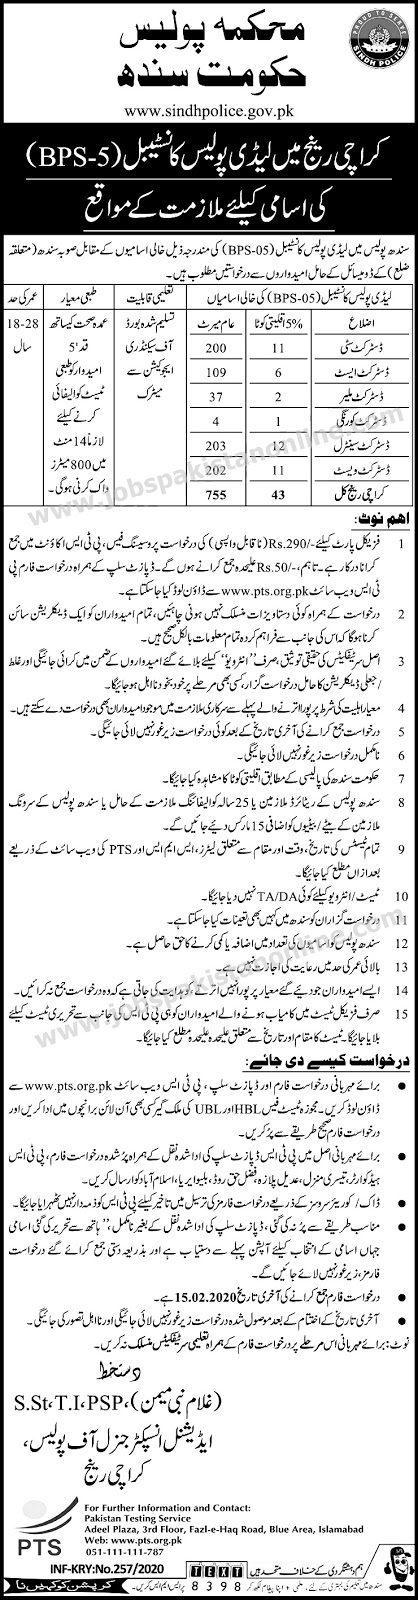 Government Jobs in Sindh Police Jobs For Lady Constable | Latest 2020 | Apply Now